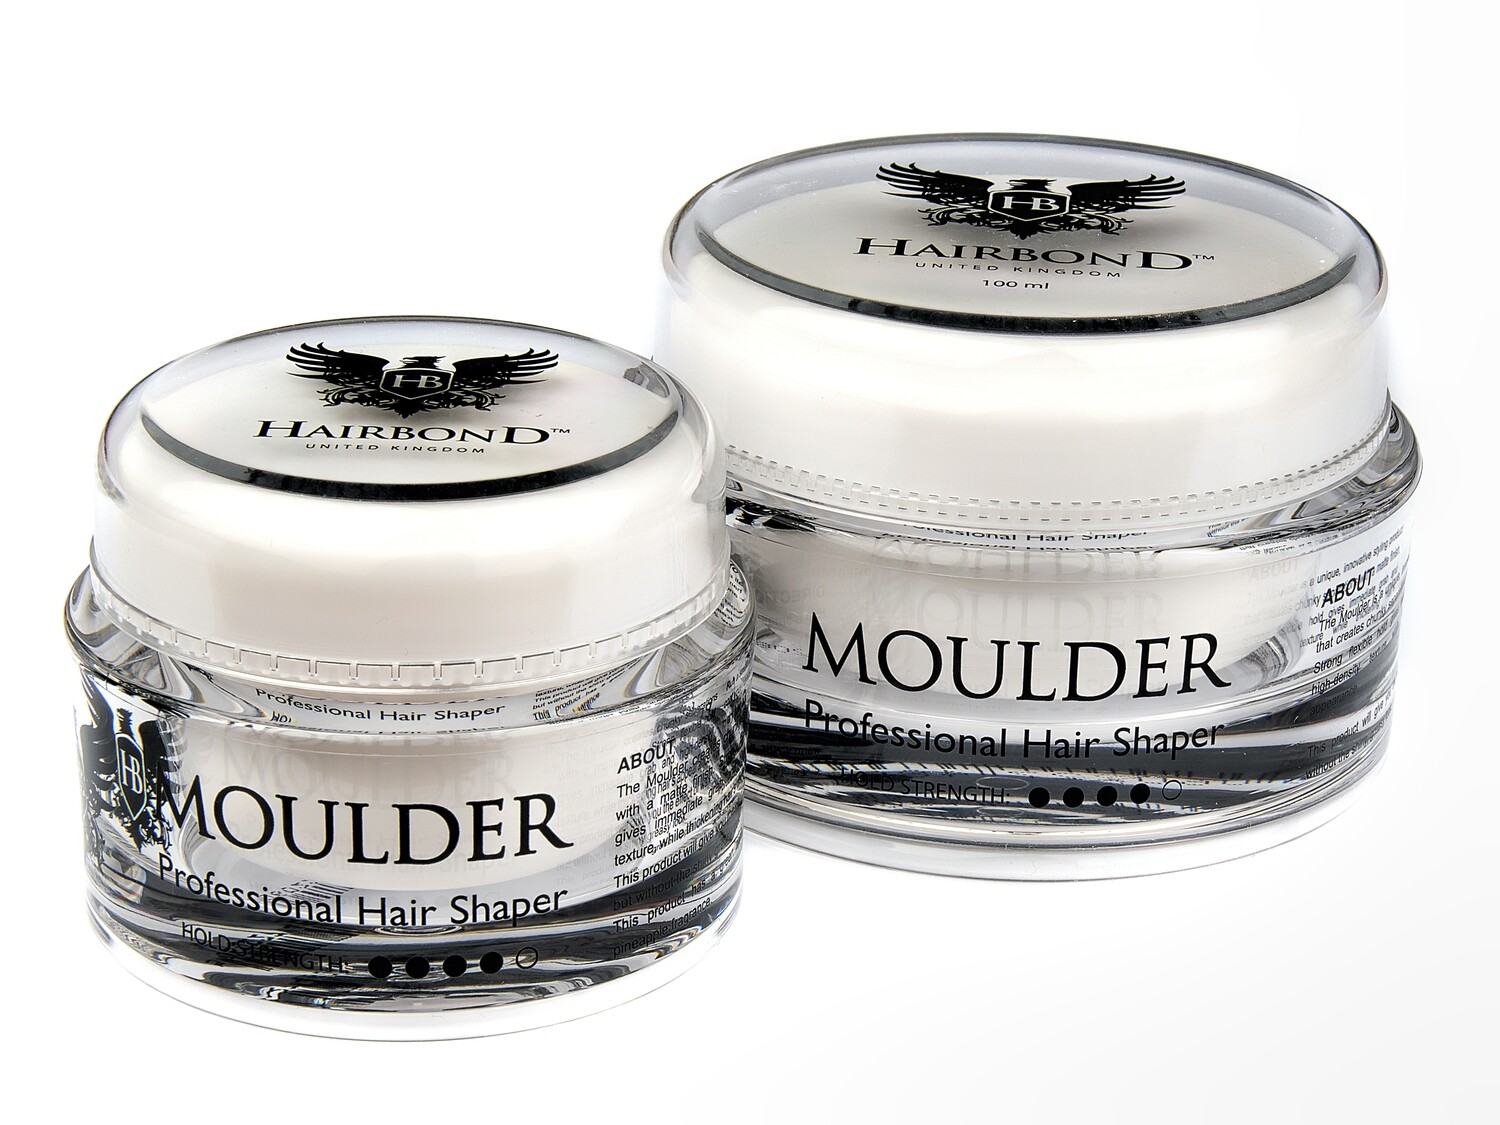 DUO Hairbond Moulder Professional Hair Shaper Pack (50ml & 100ml)